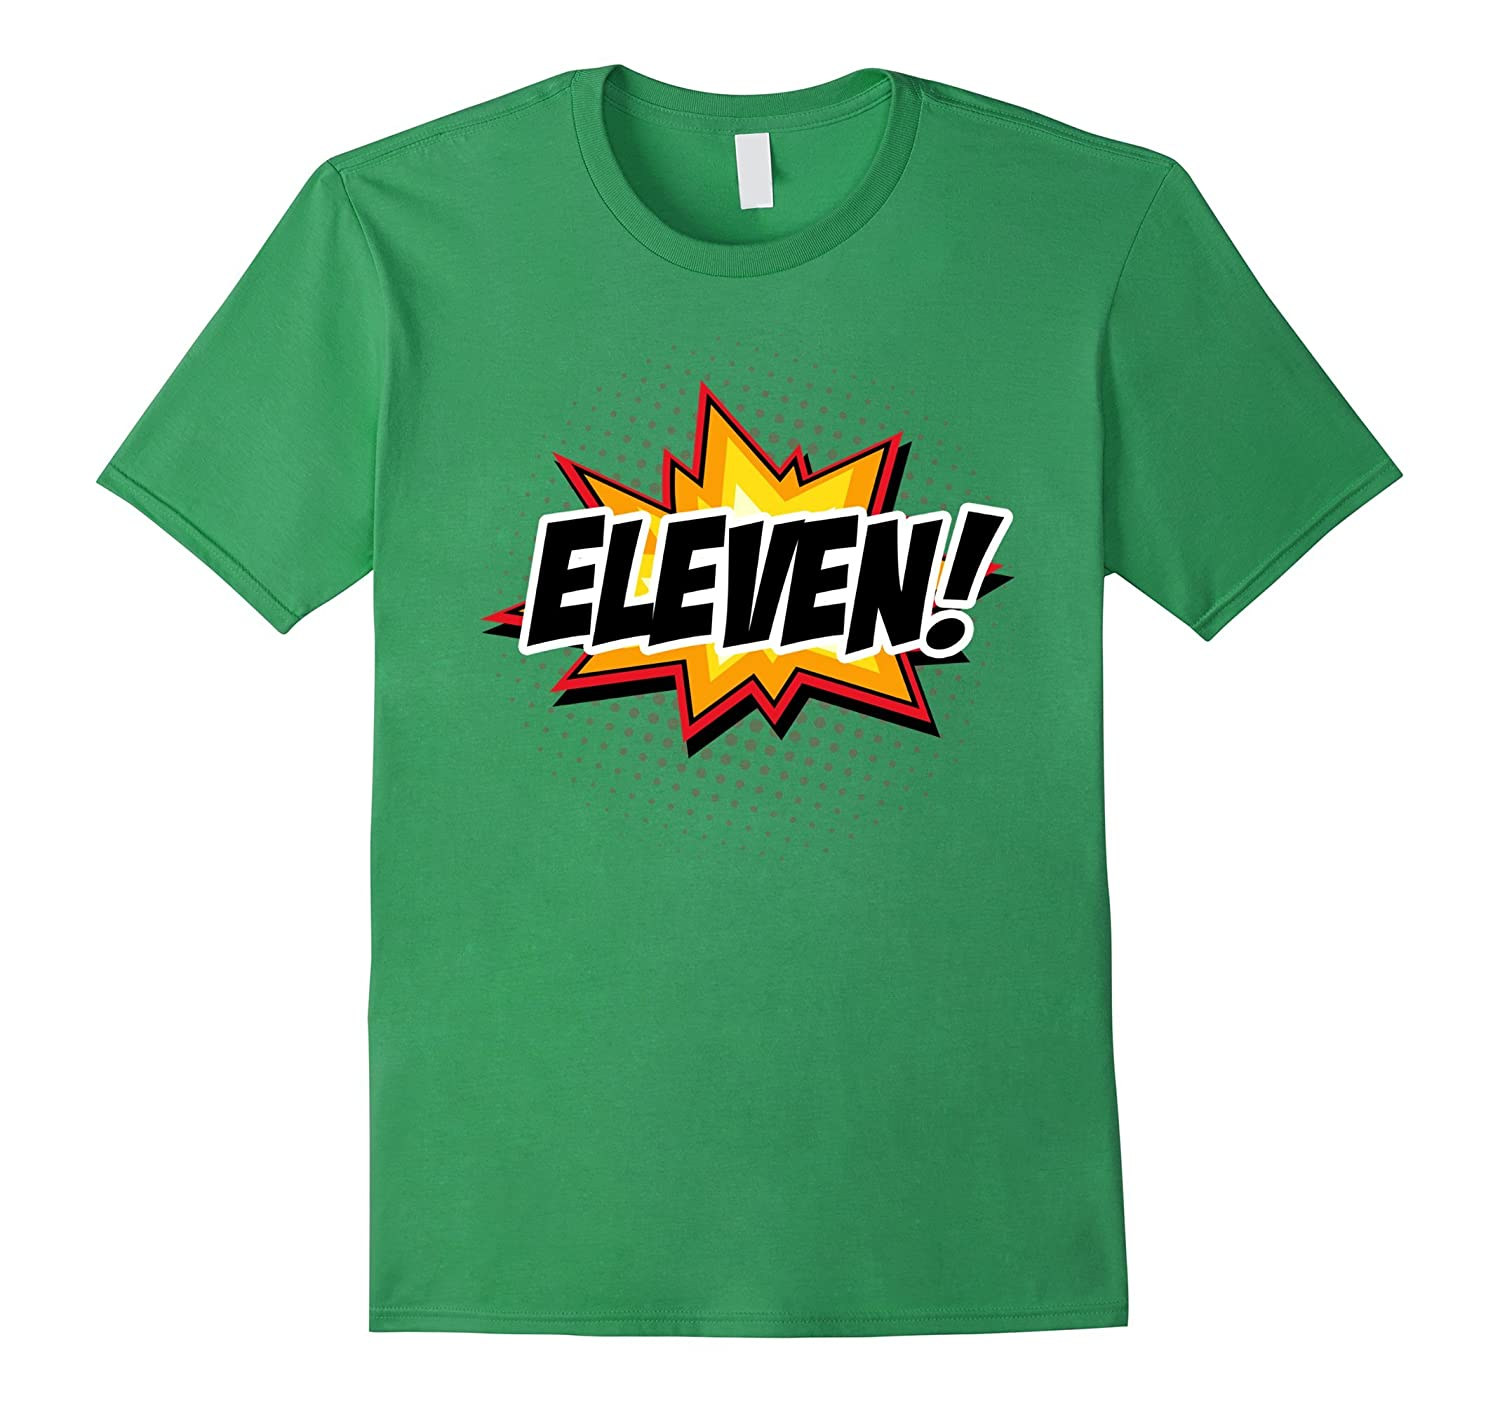 b7d0dbf6 SuperHero Birthday Shirt 11 Year Old Boys and Girls ALL AGES-TH ...